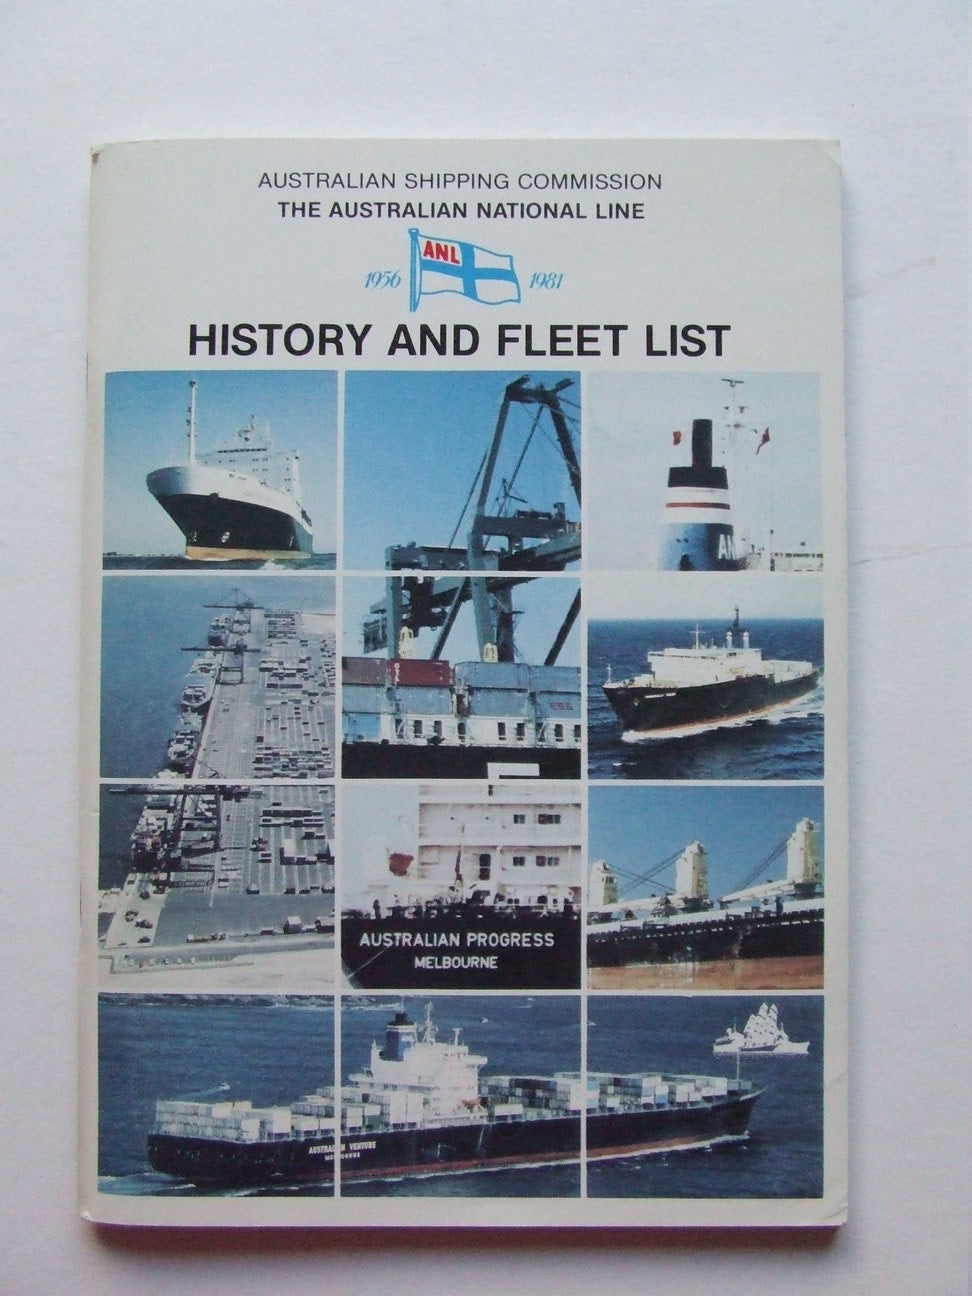 Australian Shipping Commission, the Australian National Line 1956-1981